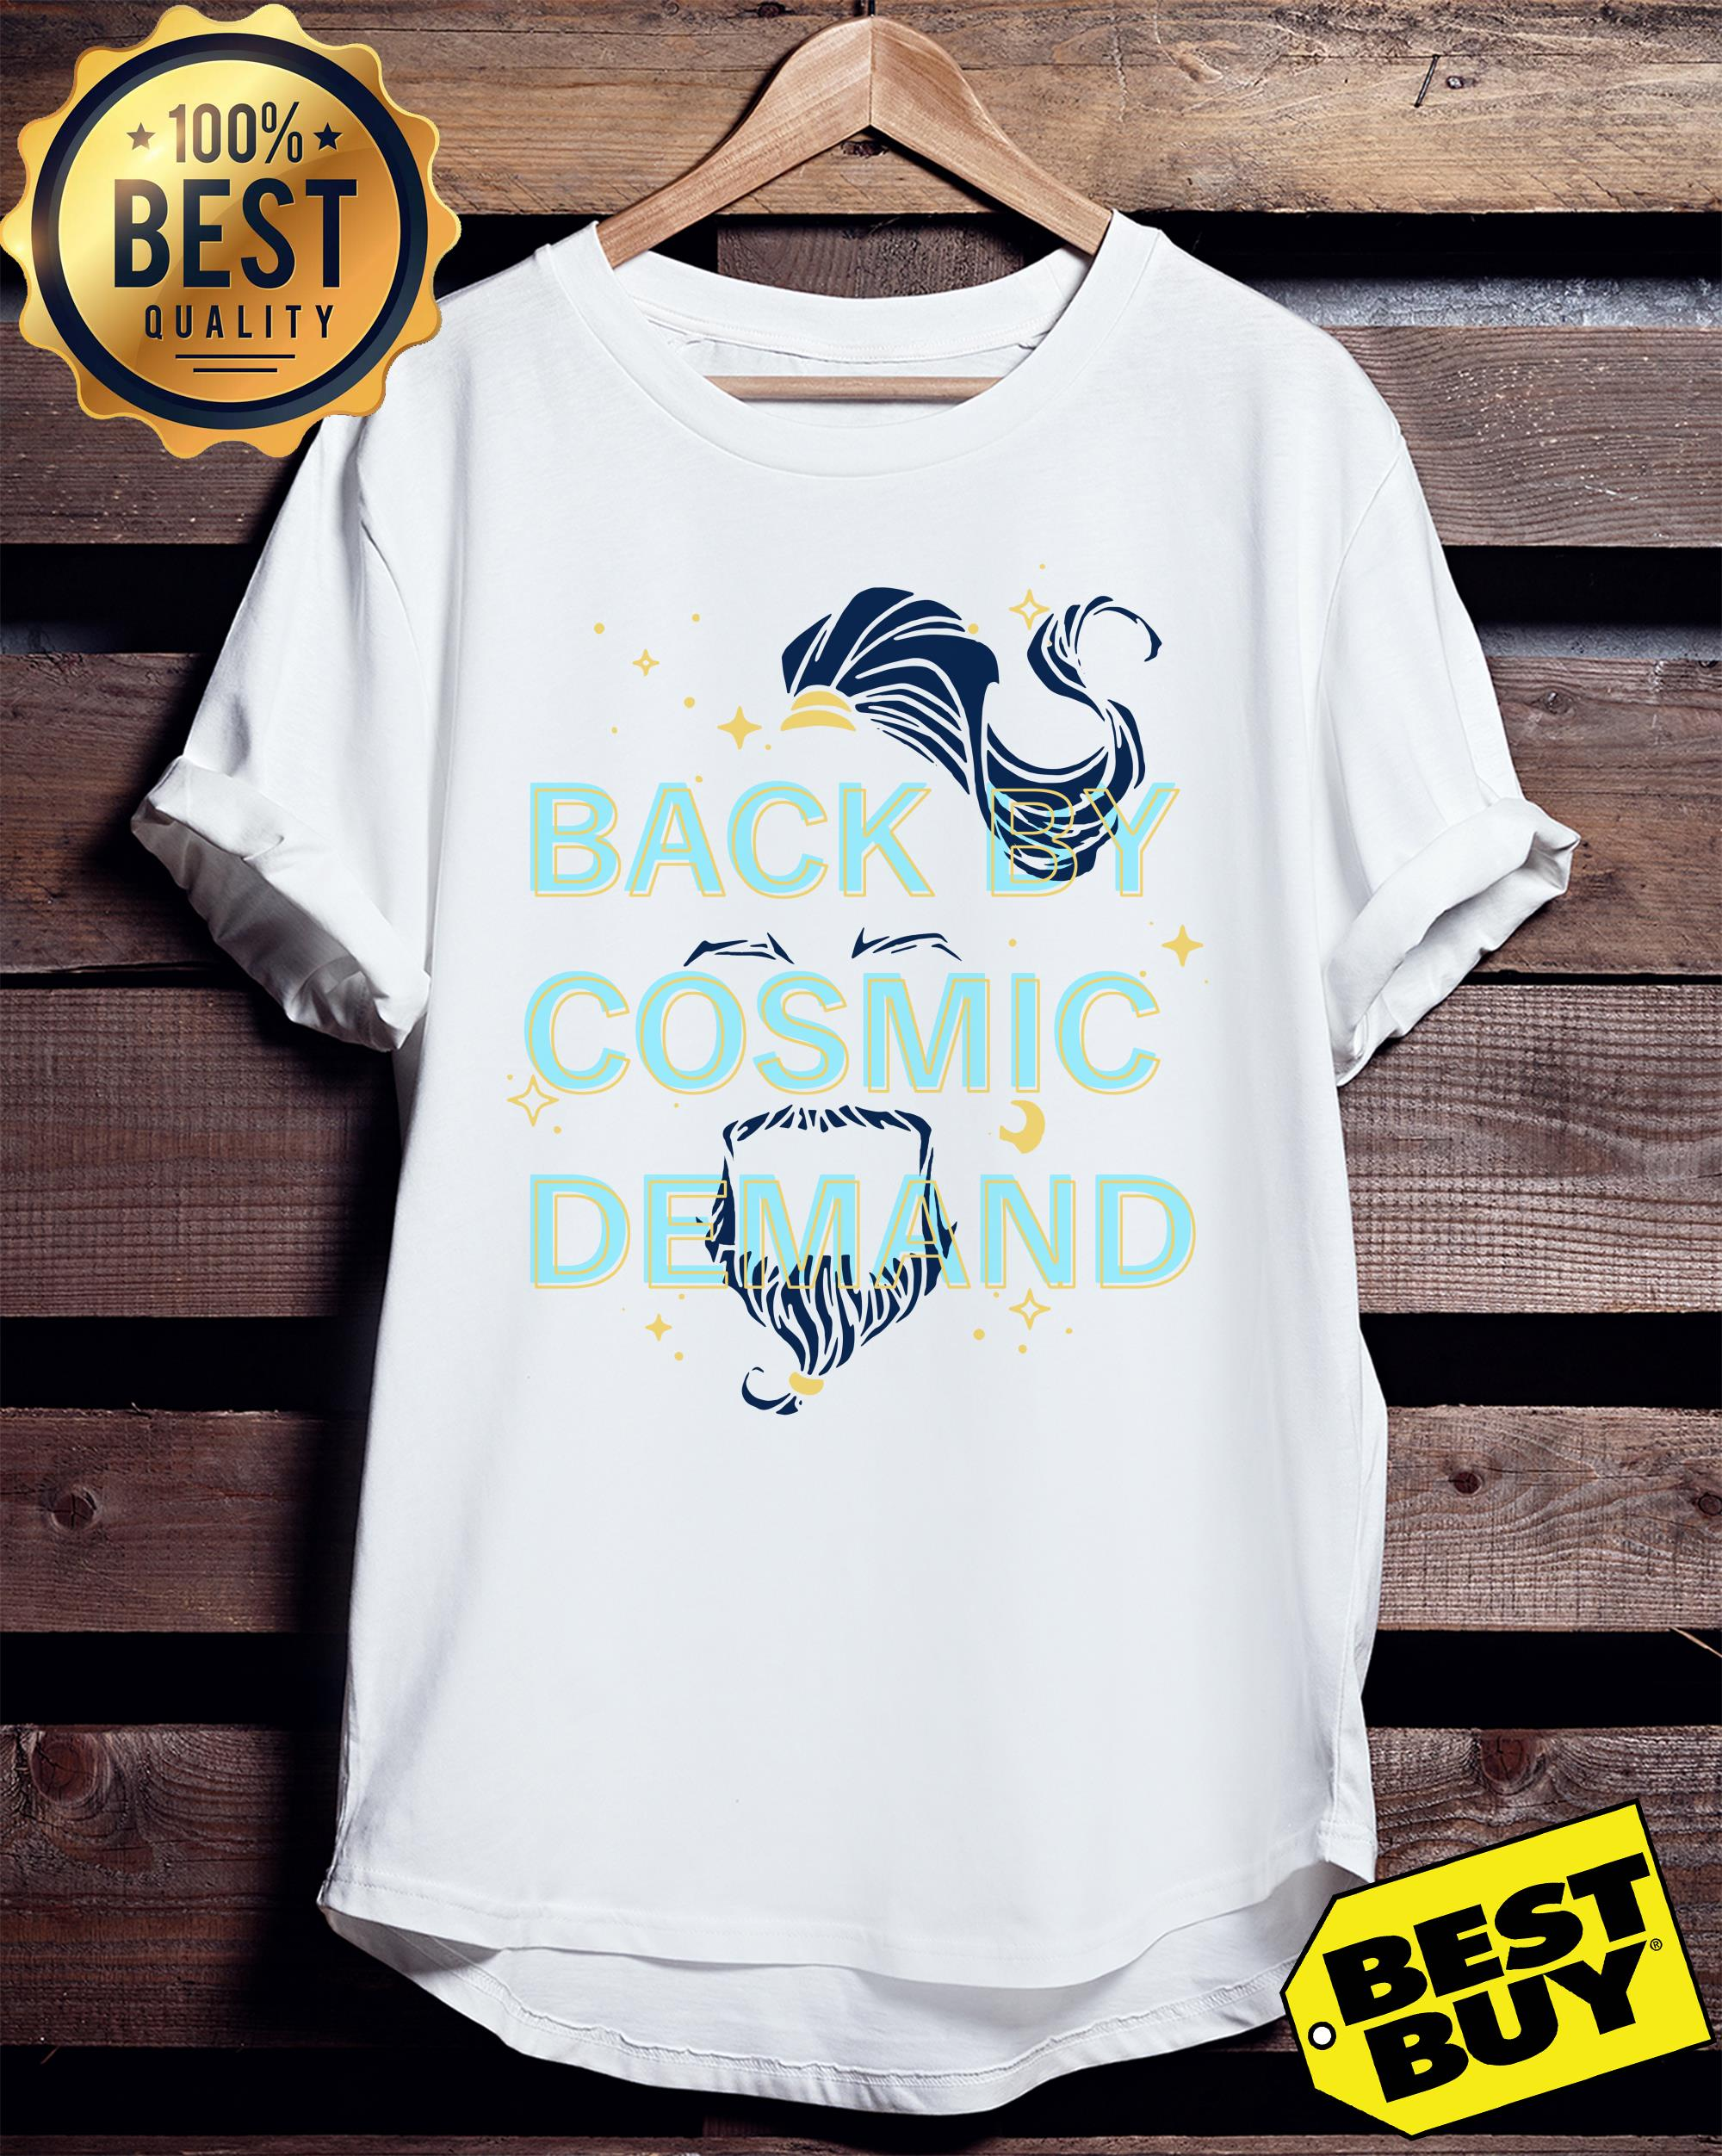 Disney Aladdin 2019 back by cosmic demand ladies tee